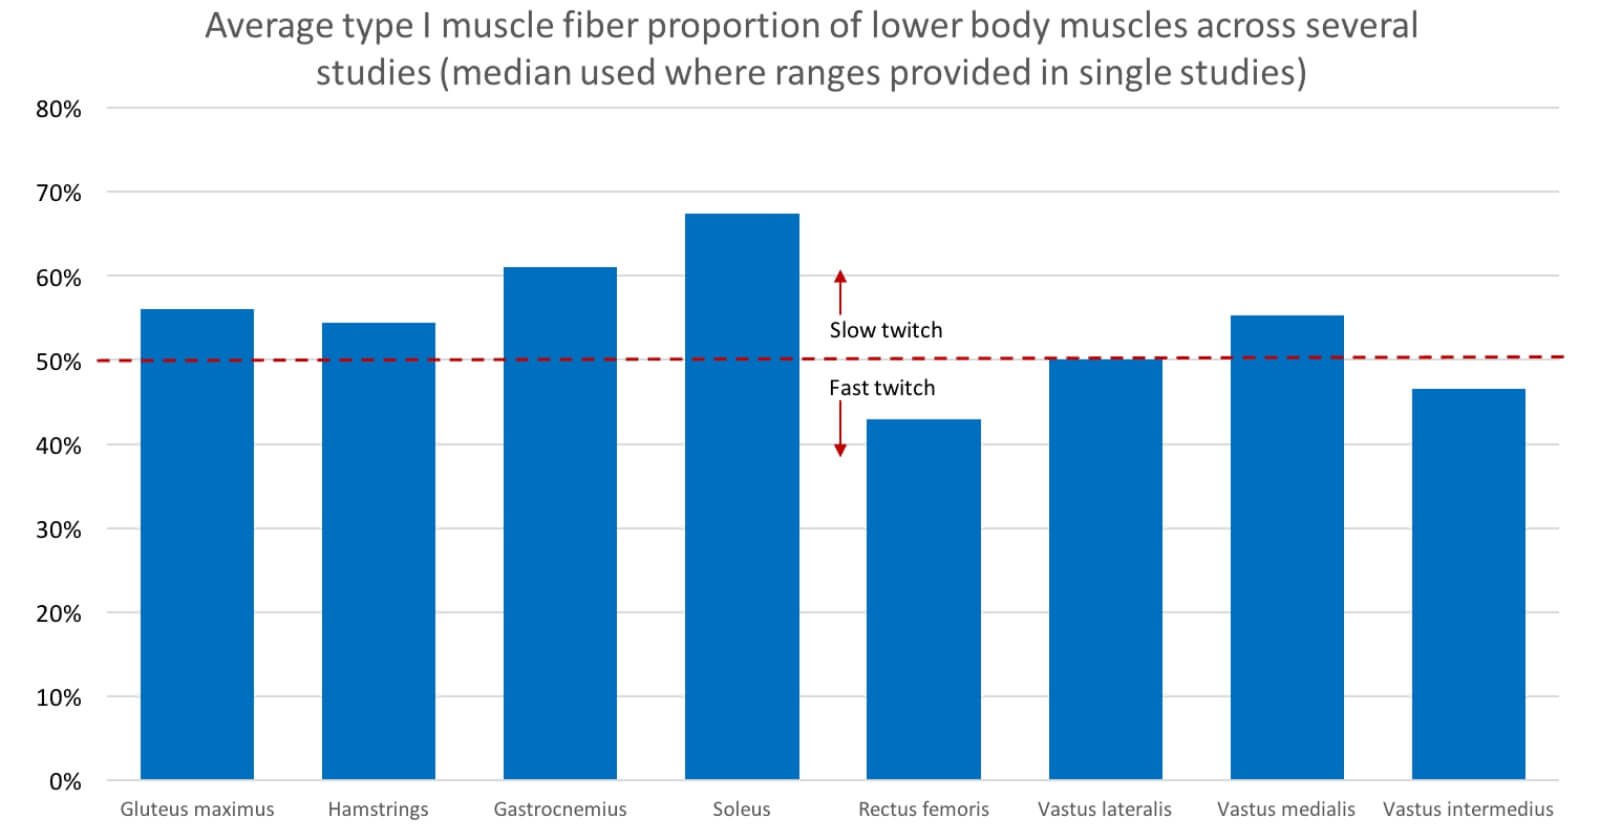 muscle fiber types lower body